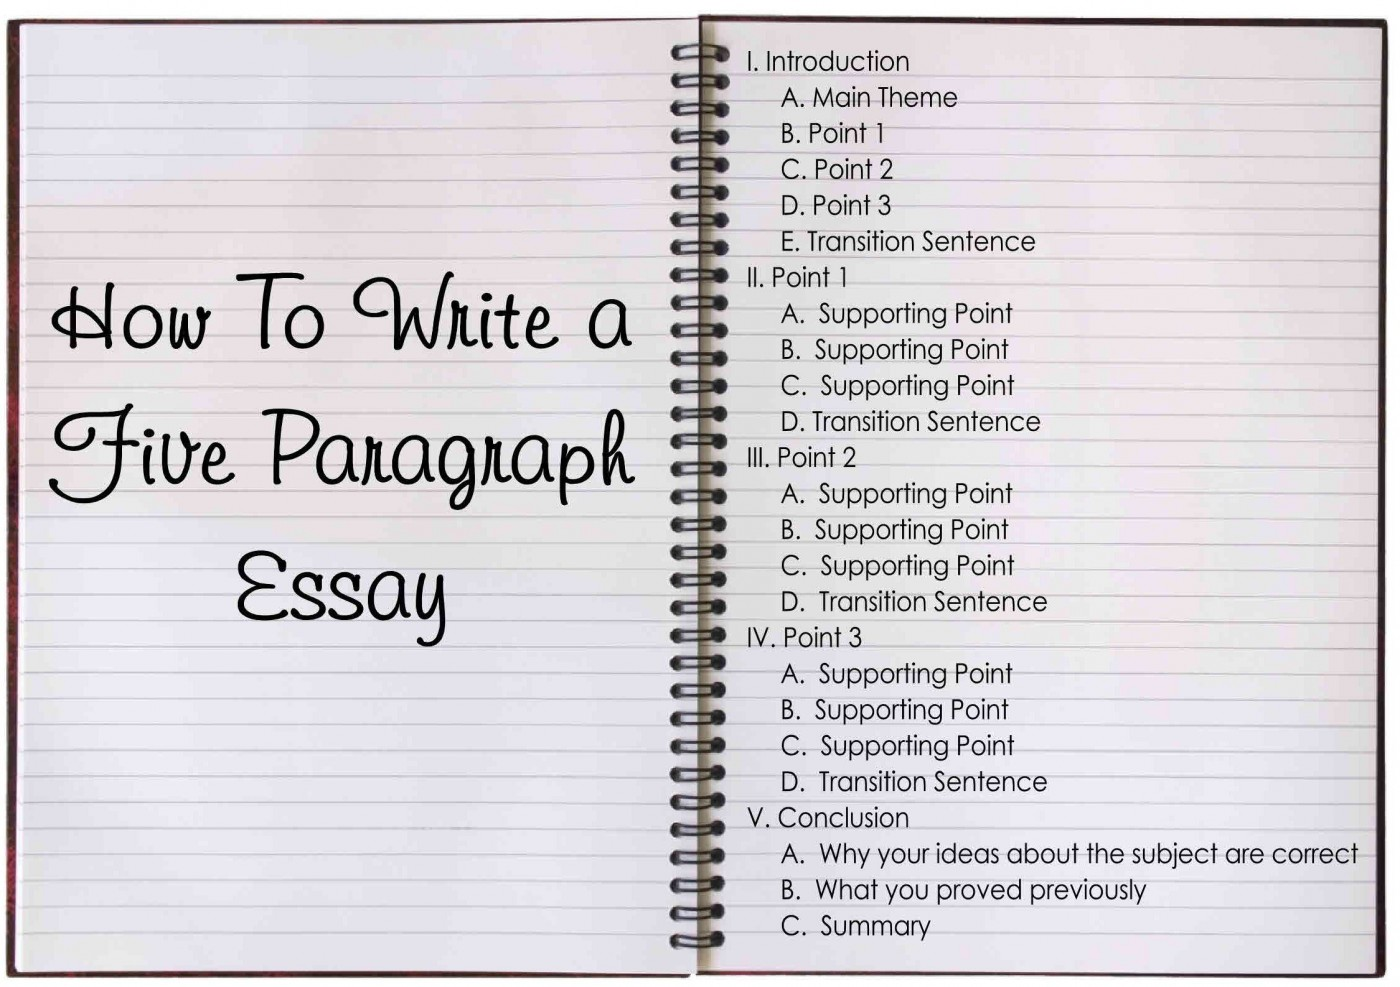 006 How To Write Five Paragraph Essay Unbelievable A Example Ppt Powerpoint 1400